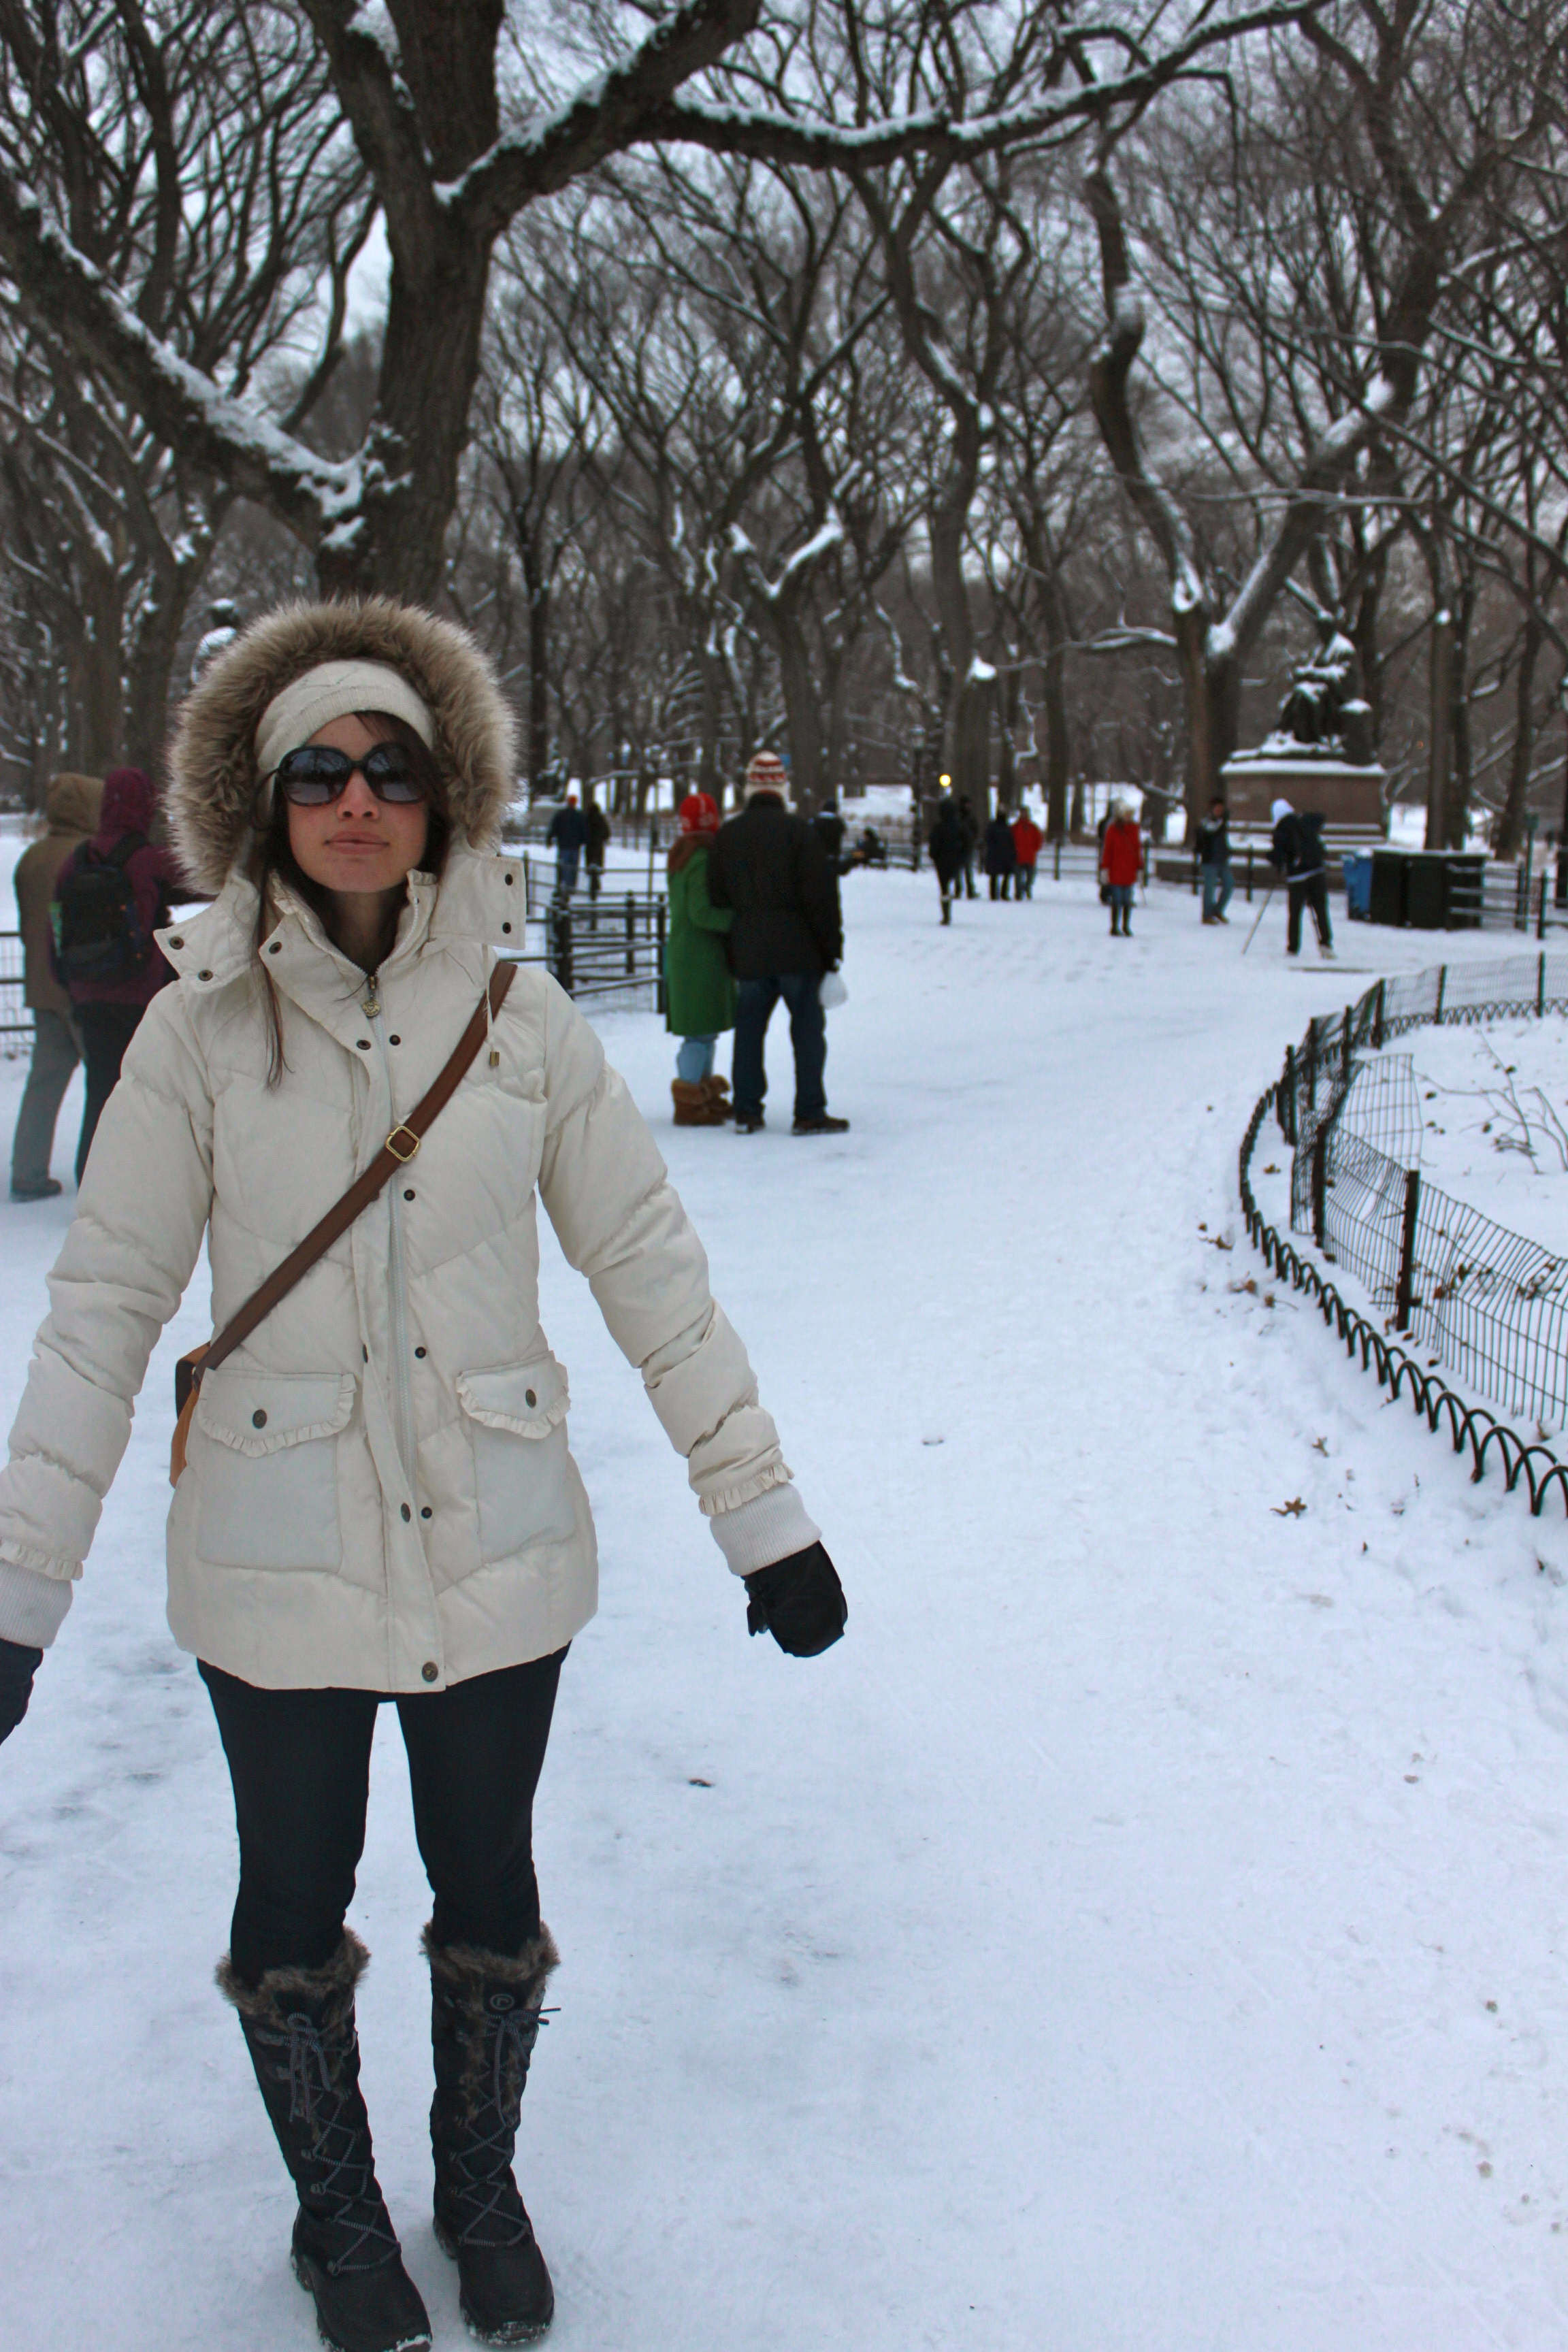 """My awkward, lost expression in this picture cracks me up. """"What is all this white stuff?  Why is it so cold??"""""""